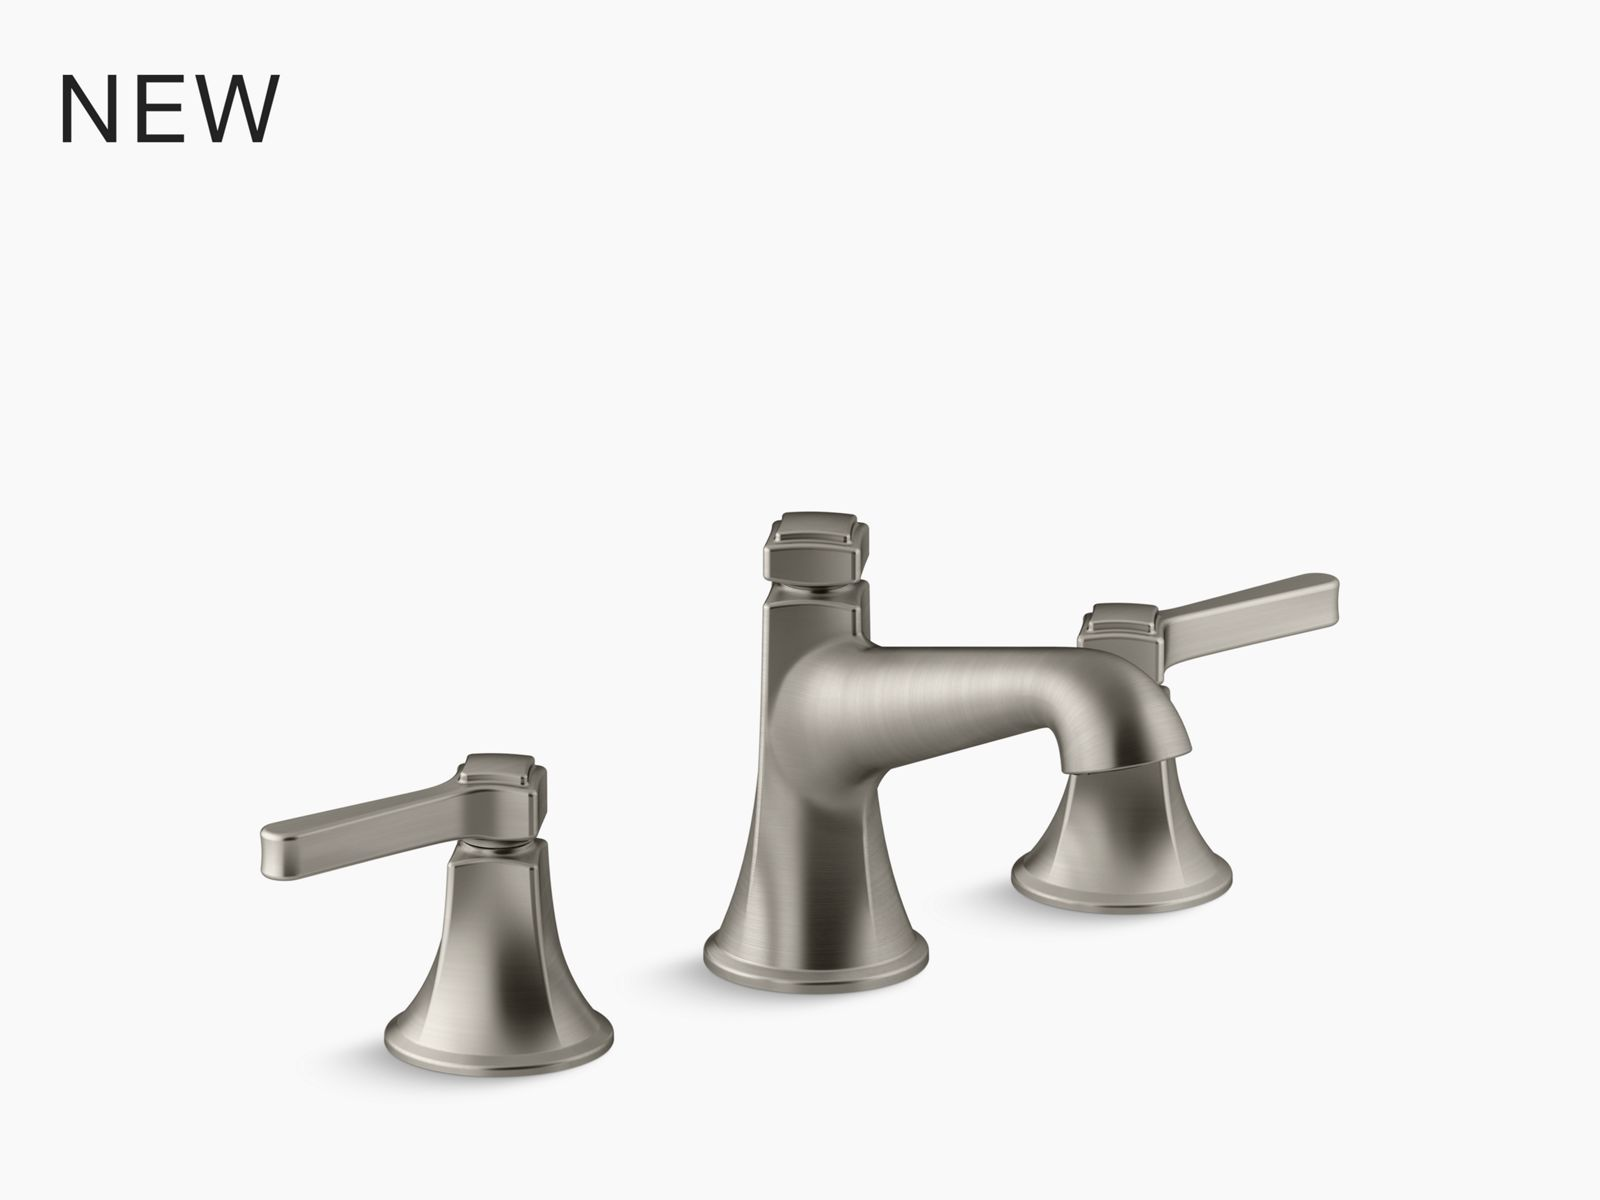 purist single hole kitchen sink faucet with 7 pull out spout